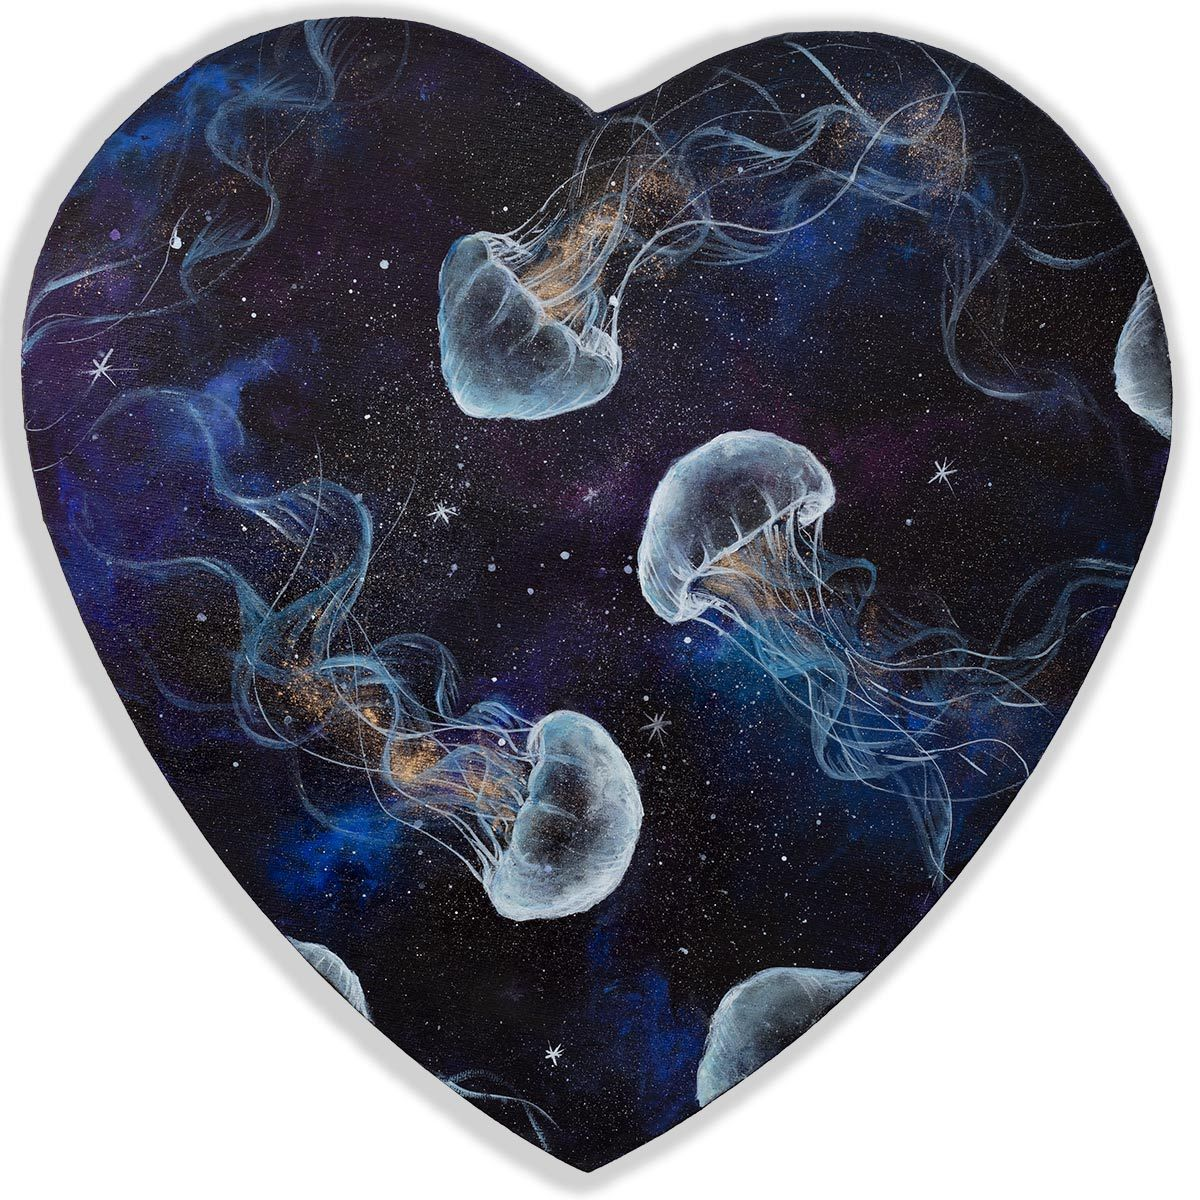 Heart of My Universe - Original - SOLD Becky Smith Original